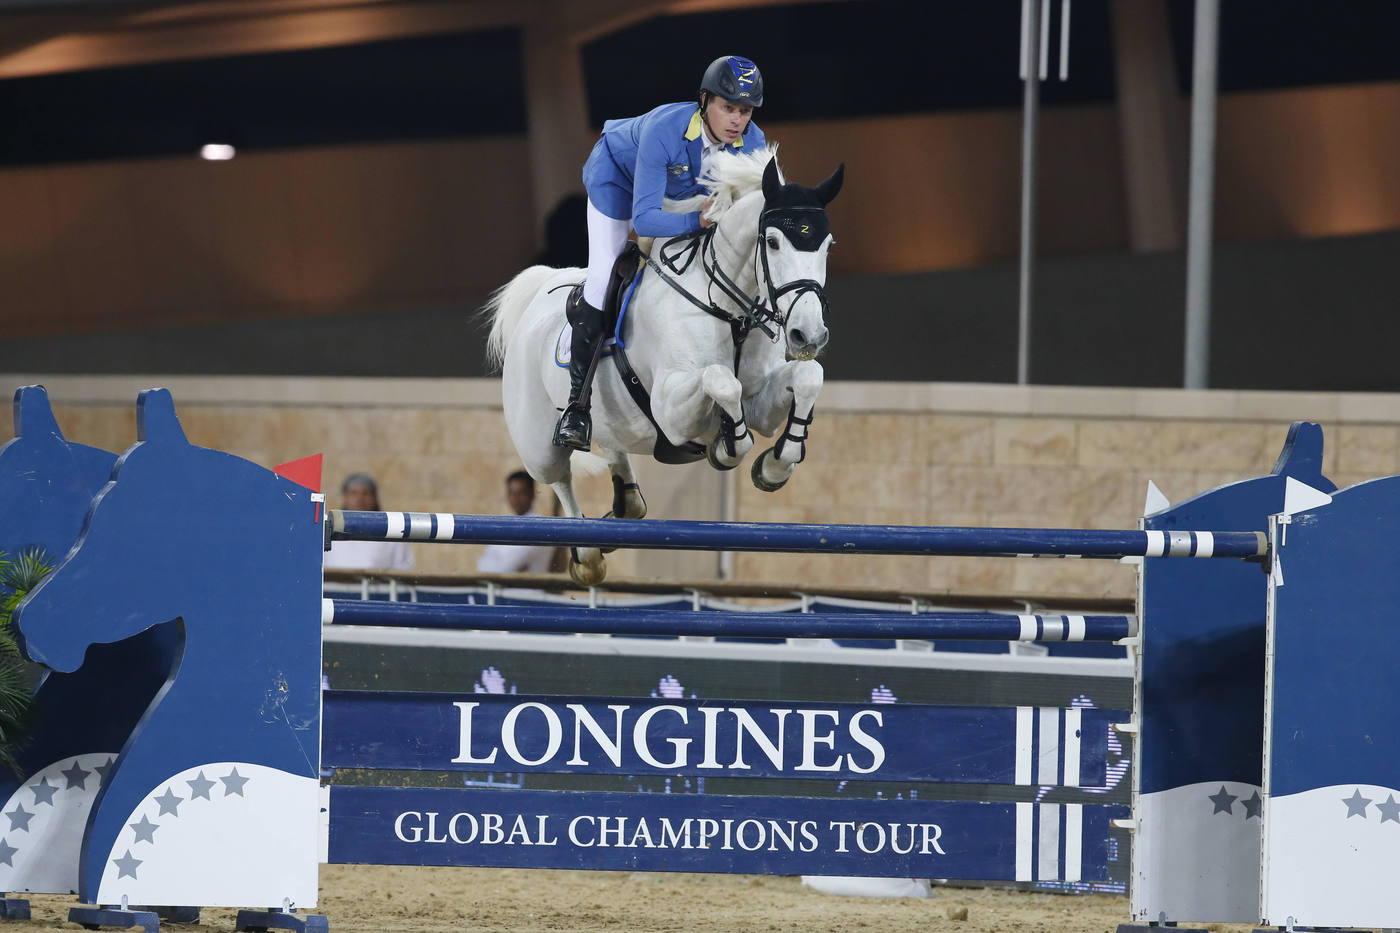 Longines Show Jumping Event: The Longines Global Champions Tour 2013 – A thrilling finale in Doha 2